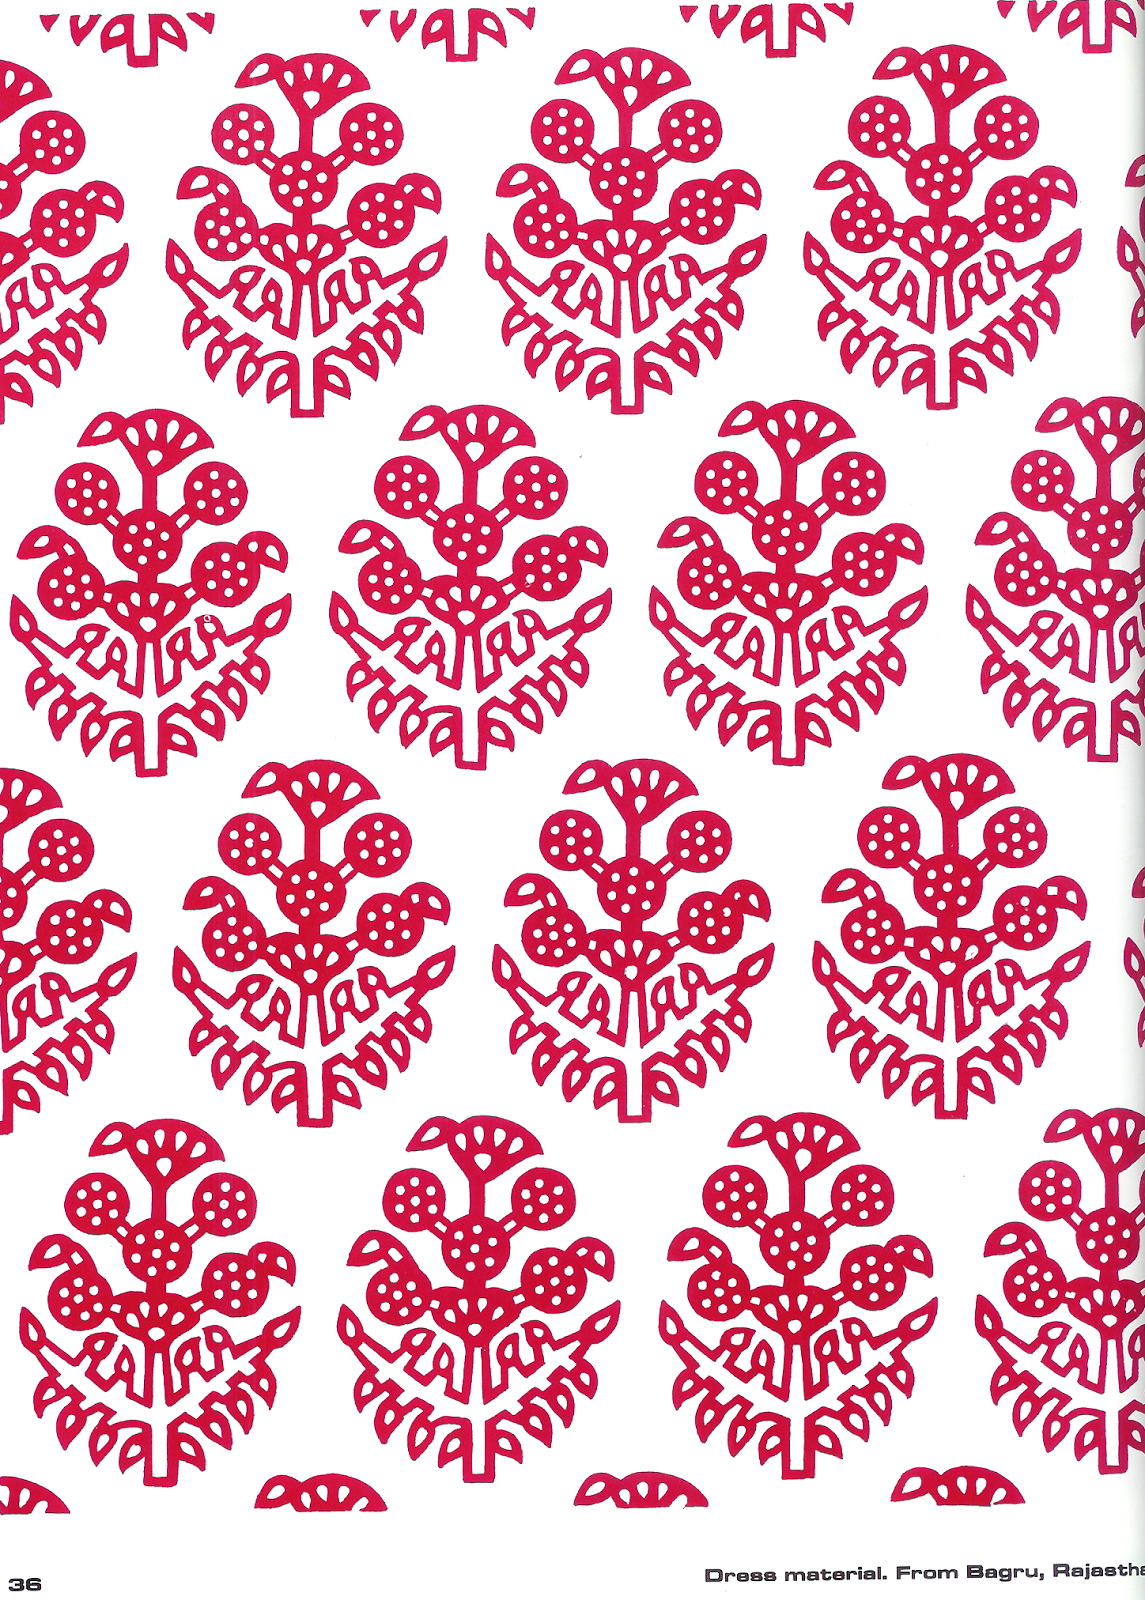 Flyer Goodness Traditional Indian Design Motifs Interiors Inside Ideas Interiors design about Everything [magnanprojects.com]